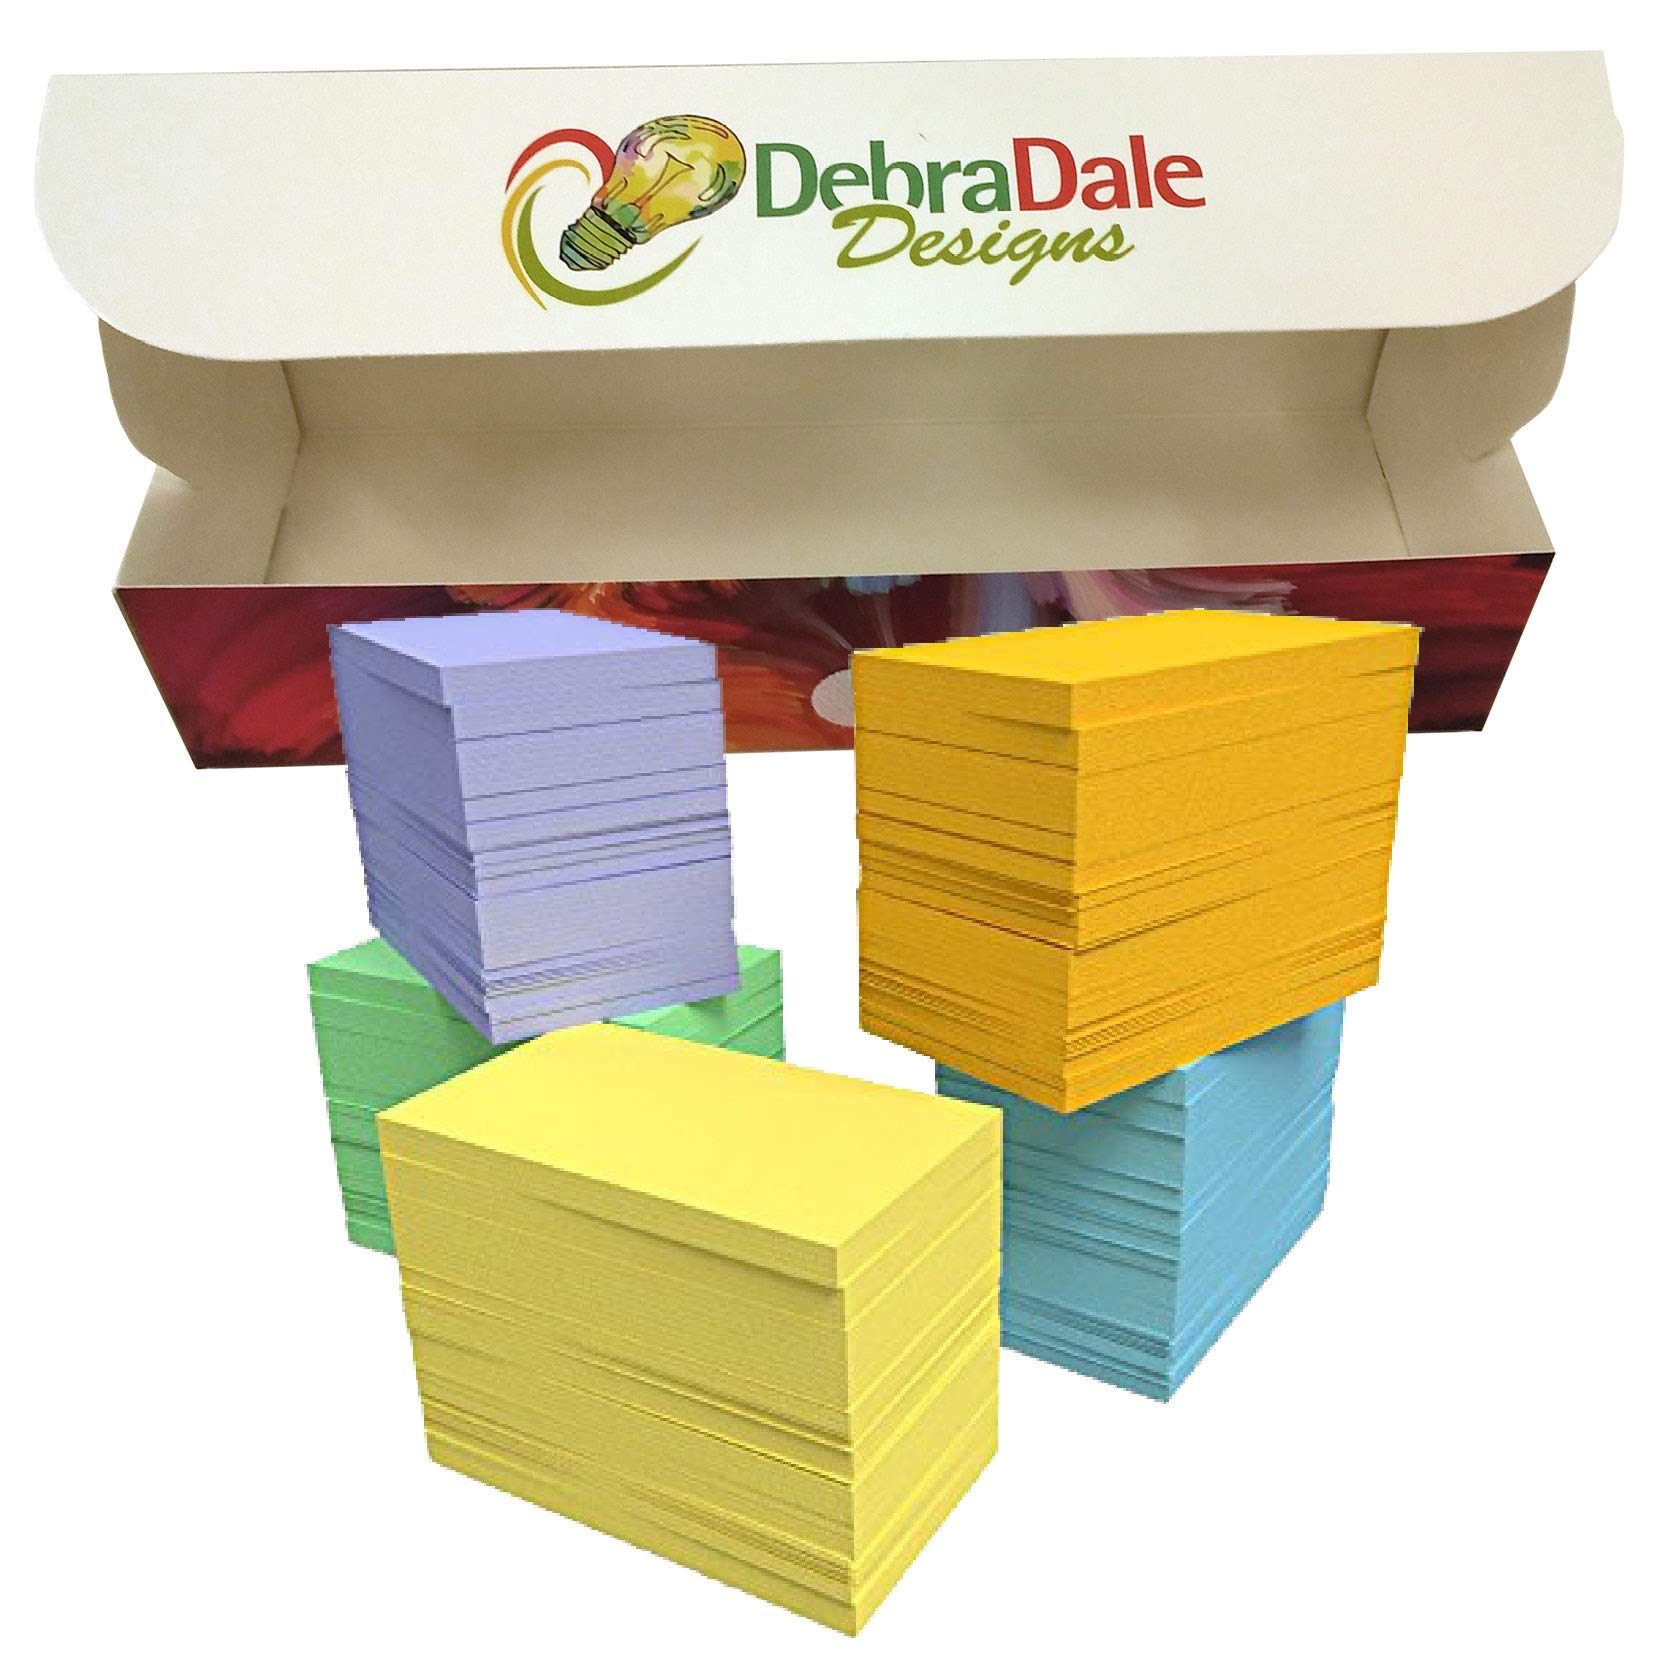 DEBRADALE DESIGNS - Product Made Entirely in the U.S.A. - Small Blank Flash Cards - 2'' x 3.5'' Inches - 5 Colors - 1,100 Cards - Custom Storage Dispenser Box With Attached Lid by DEBRADALE DESIGNS